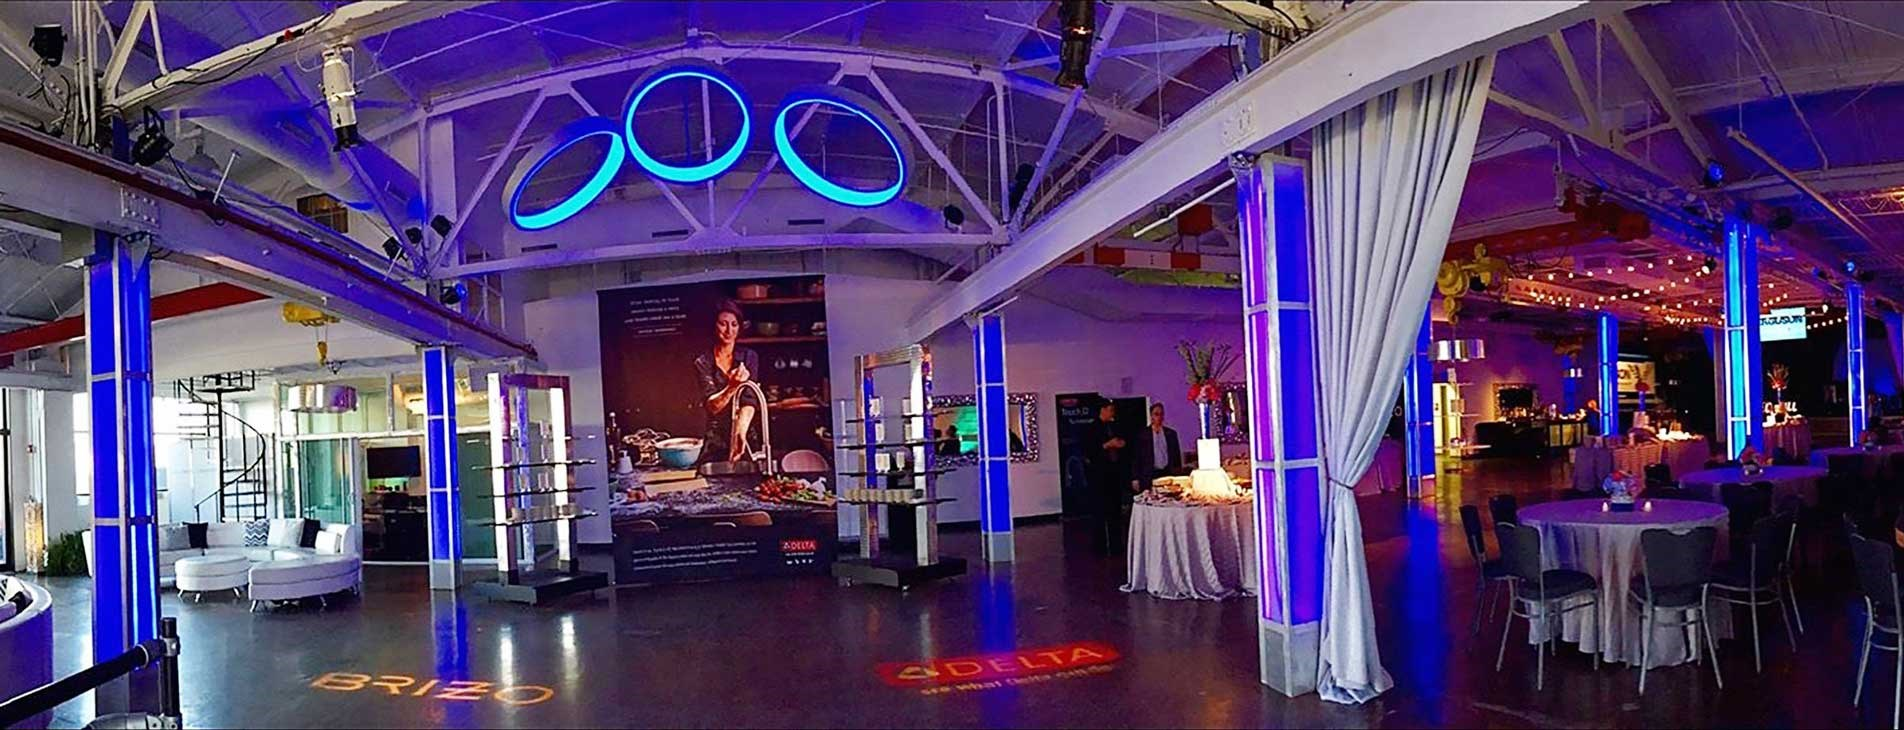 Corporate Event at The Crane Bay Venue in Indianapolis, Indiana by Crystal Catering